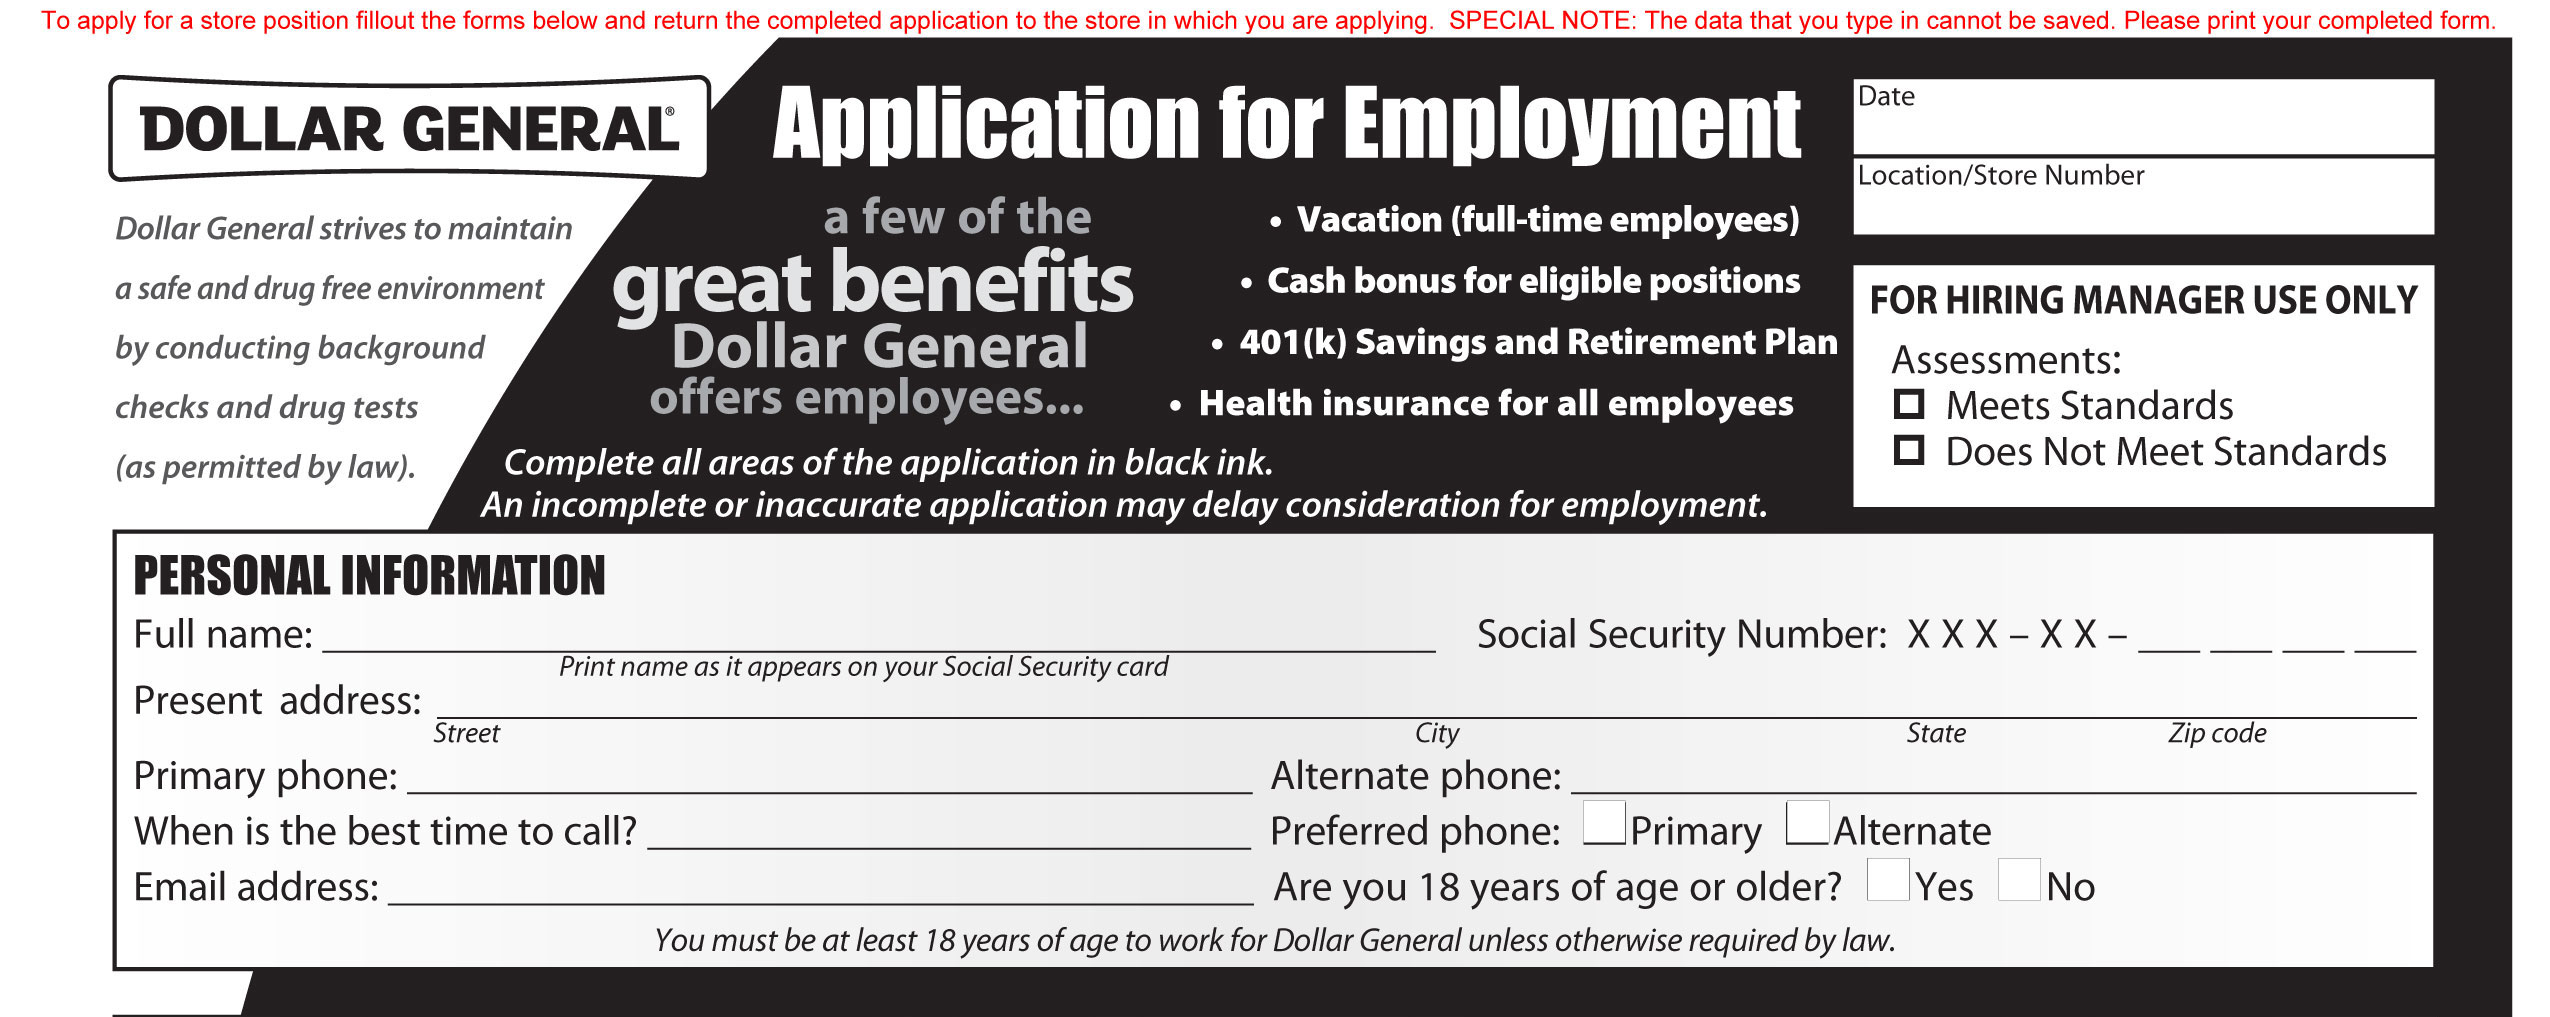 dollar general job application printable employment pdf forms